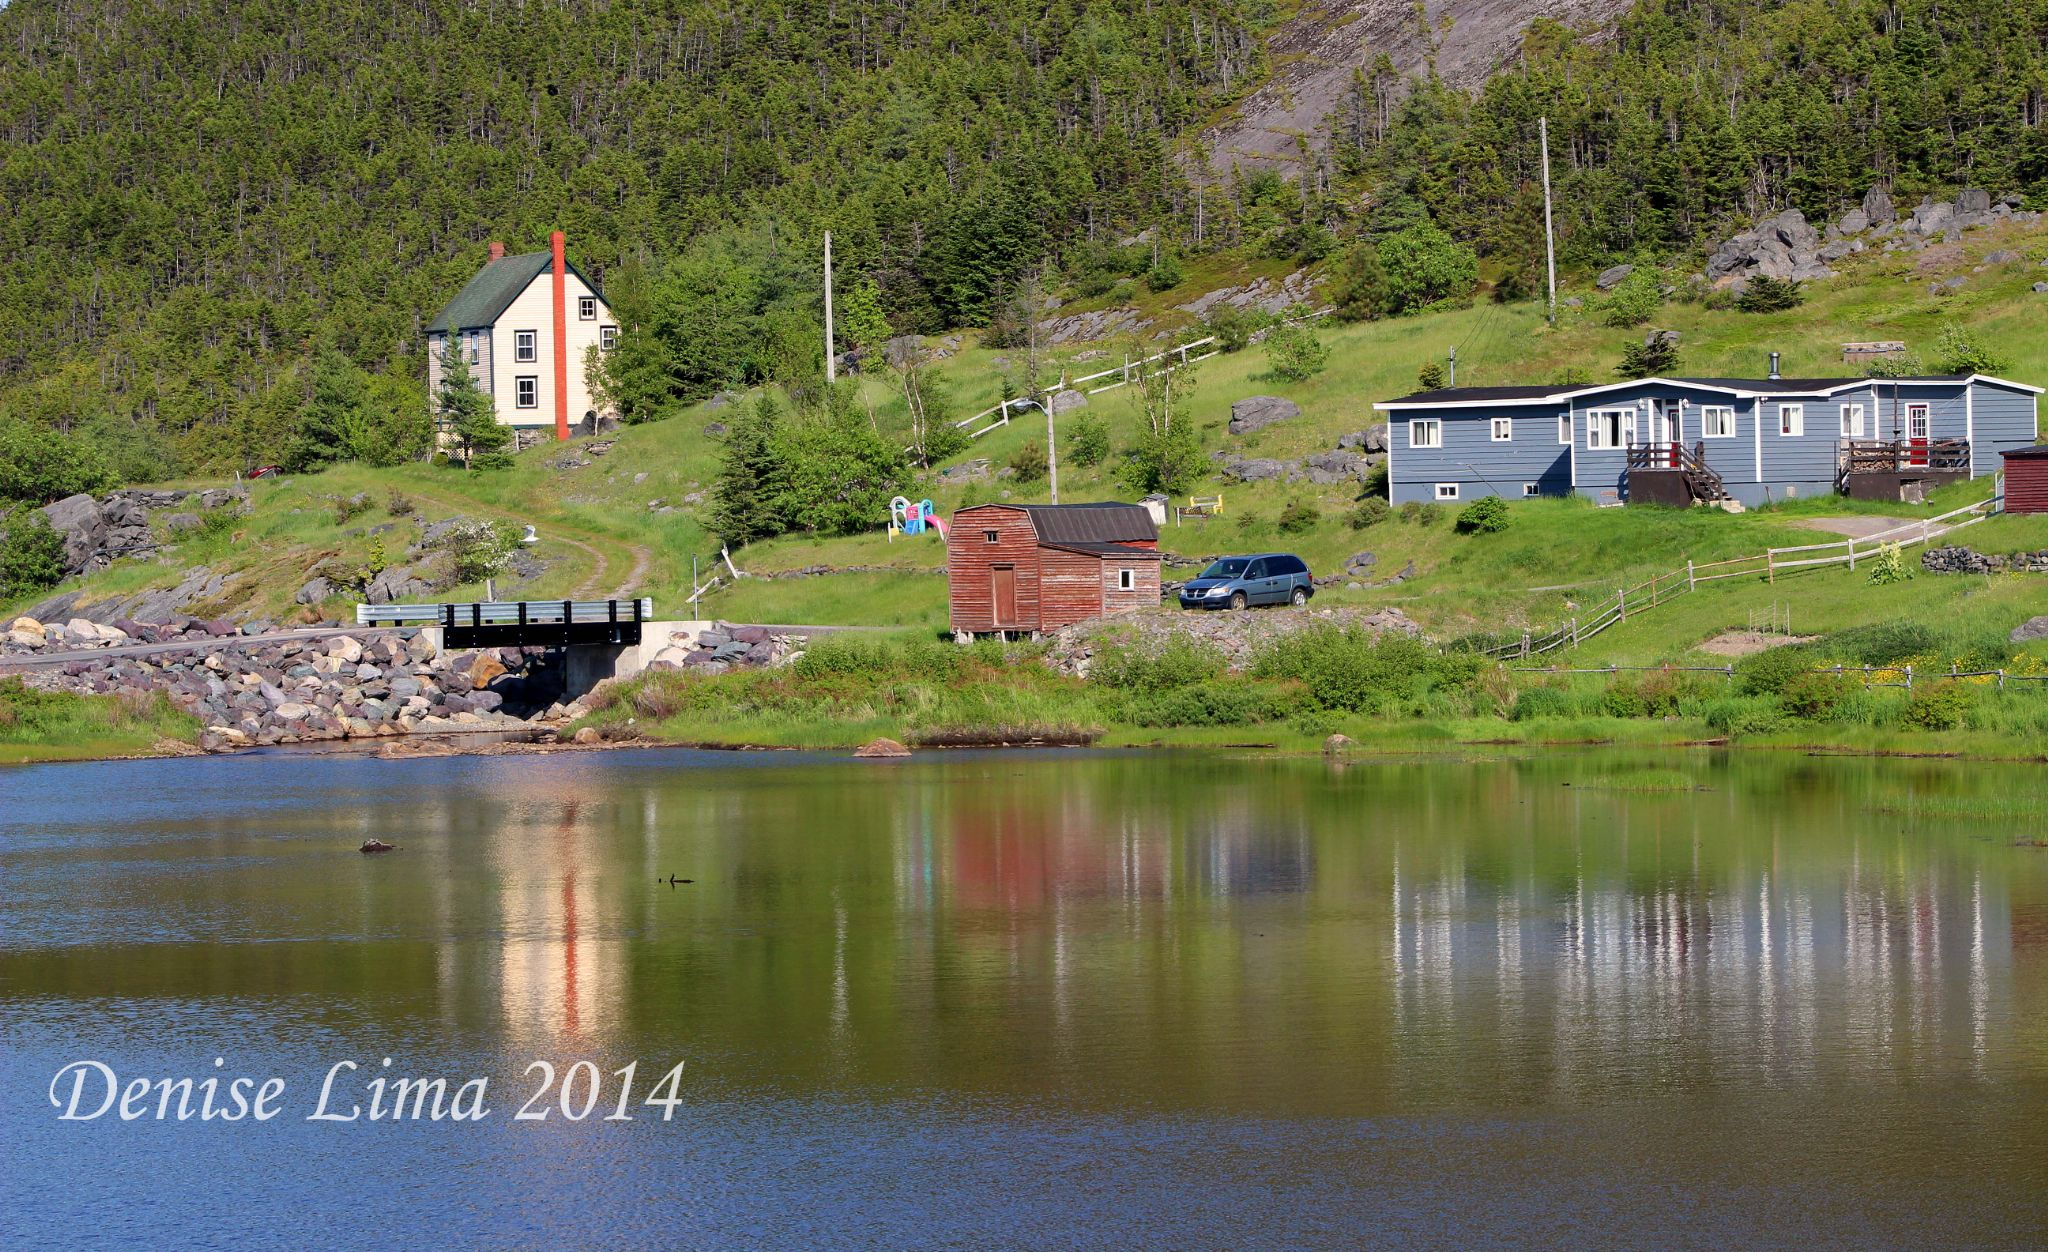 Refections of Newfoundland scenery by keoughdenise